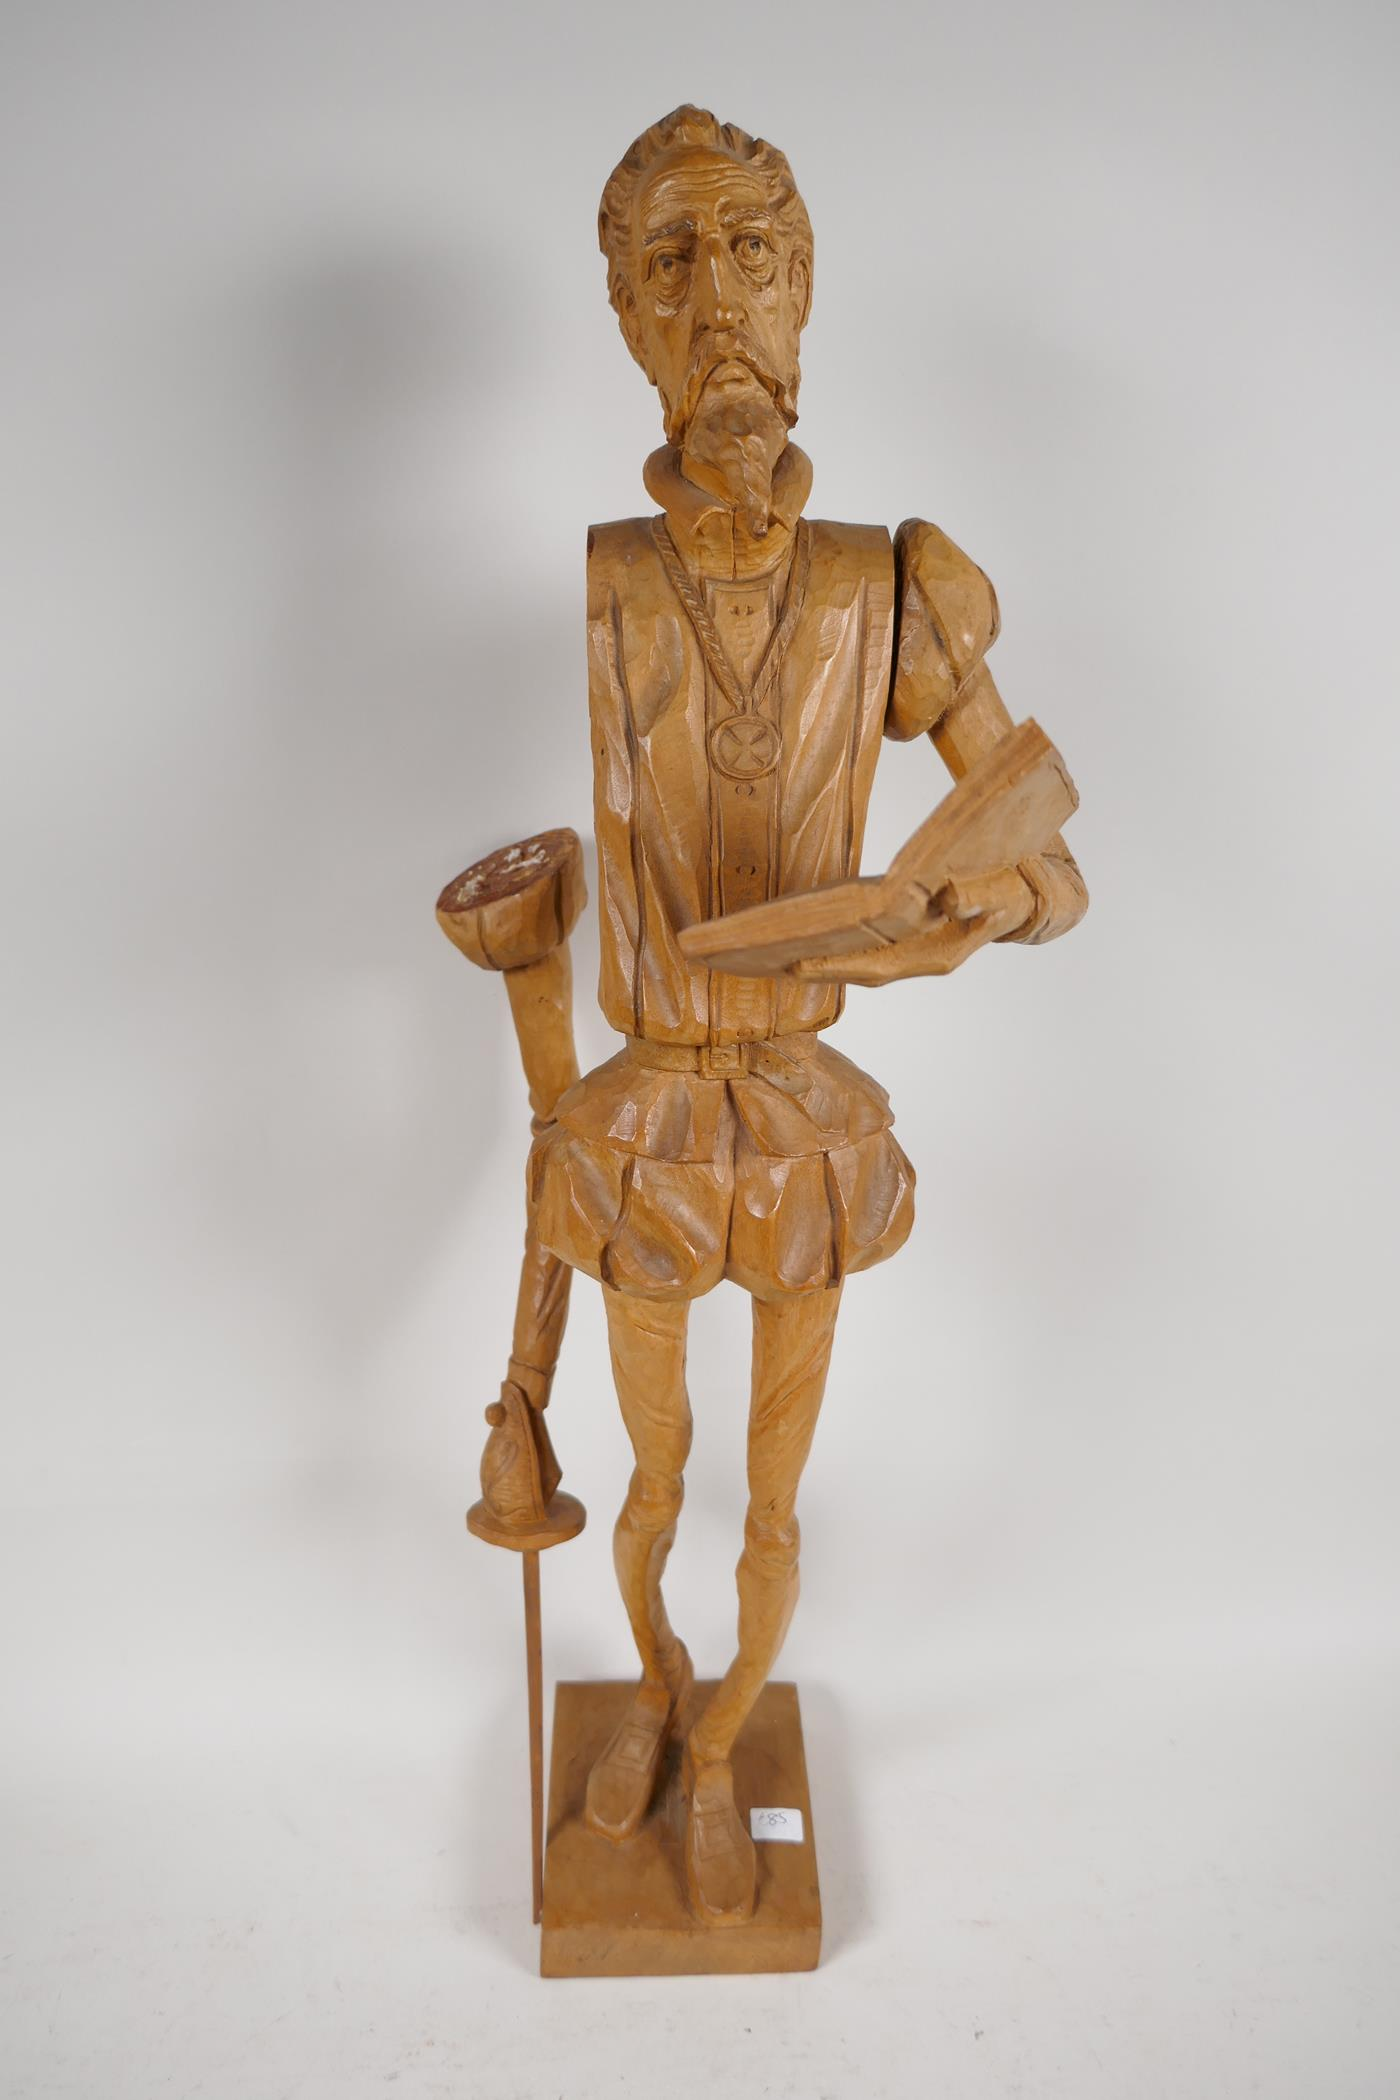 Two carved wood models of Don Quioxte and Sancho Panza, and a carved wood figure of the Don, A/F - Image 2 of 6